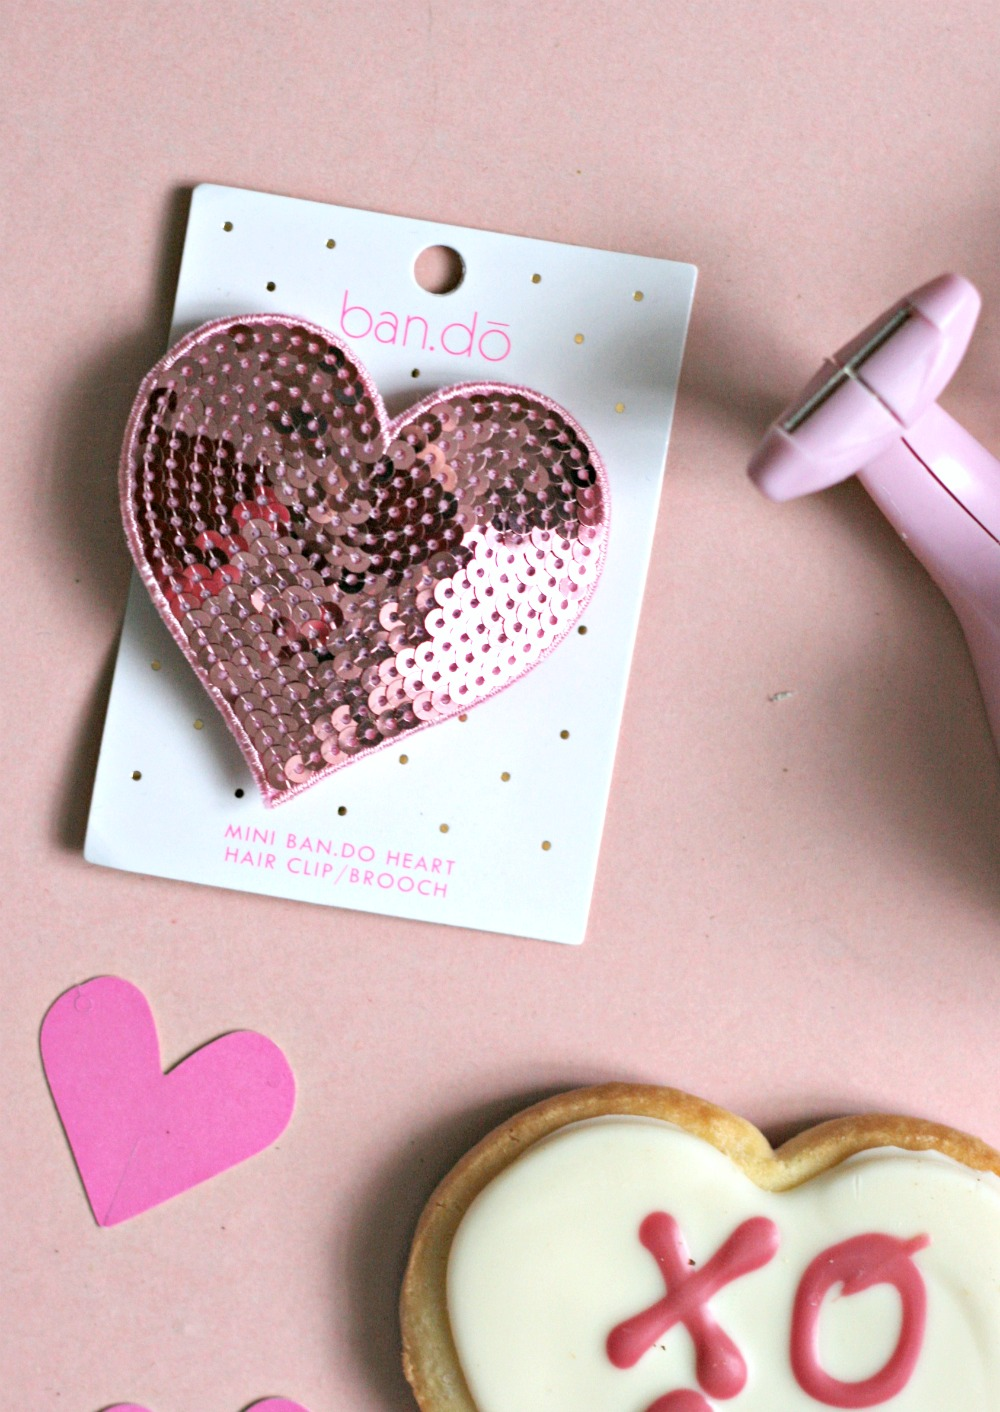 valentines-day-gift-ideas-ban-do-heart-hair-clip-and-brooch